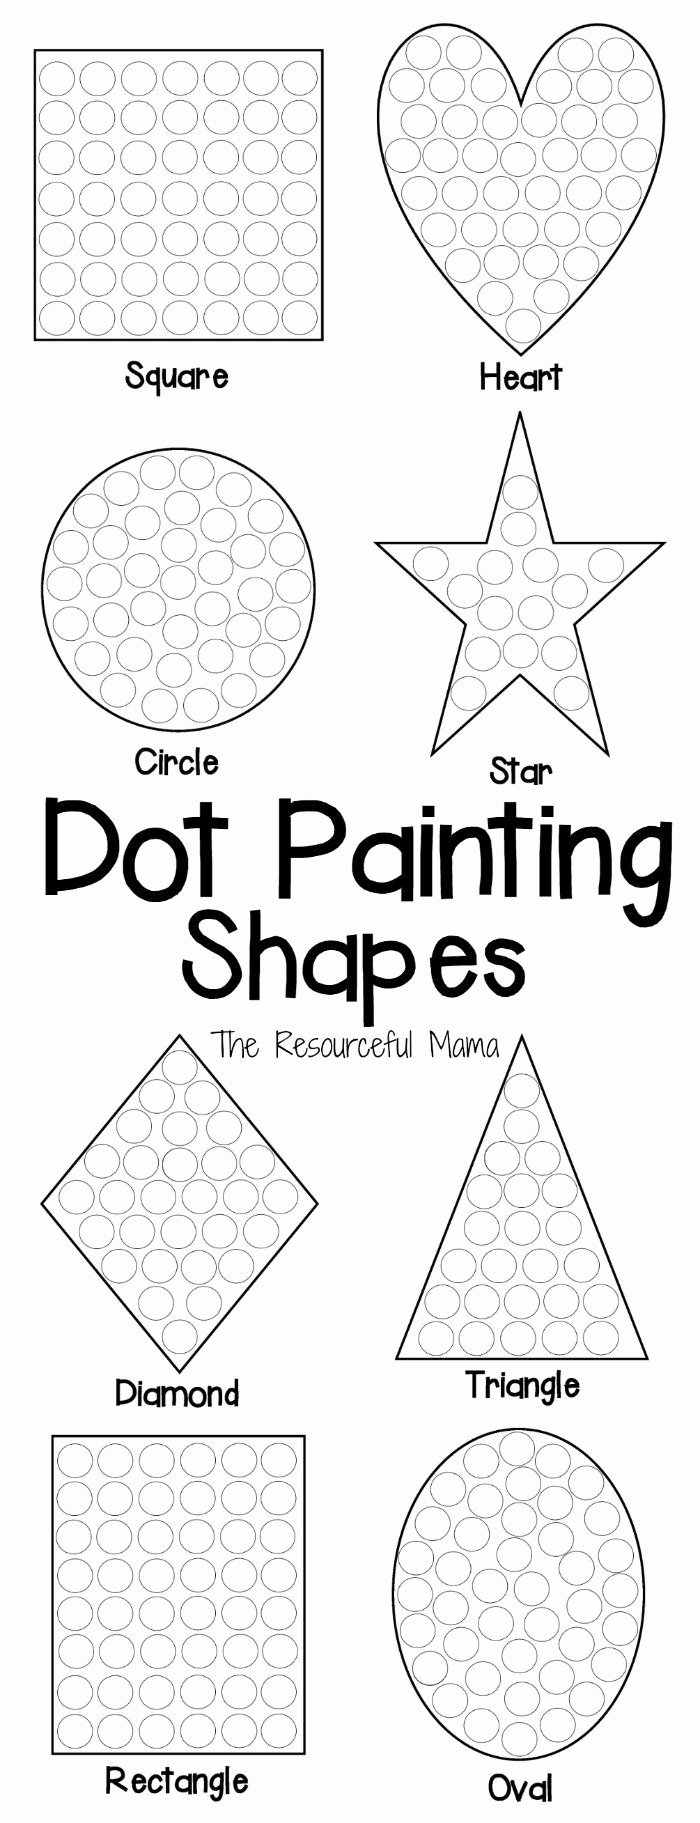 Eye Hand Coordination Worksheets for Preschoolers Free Shapes Dot Painting Free Printable